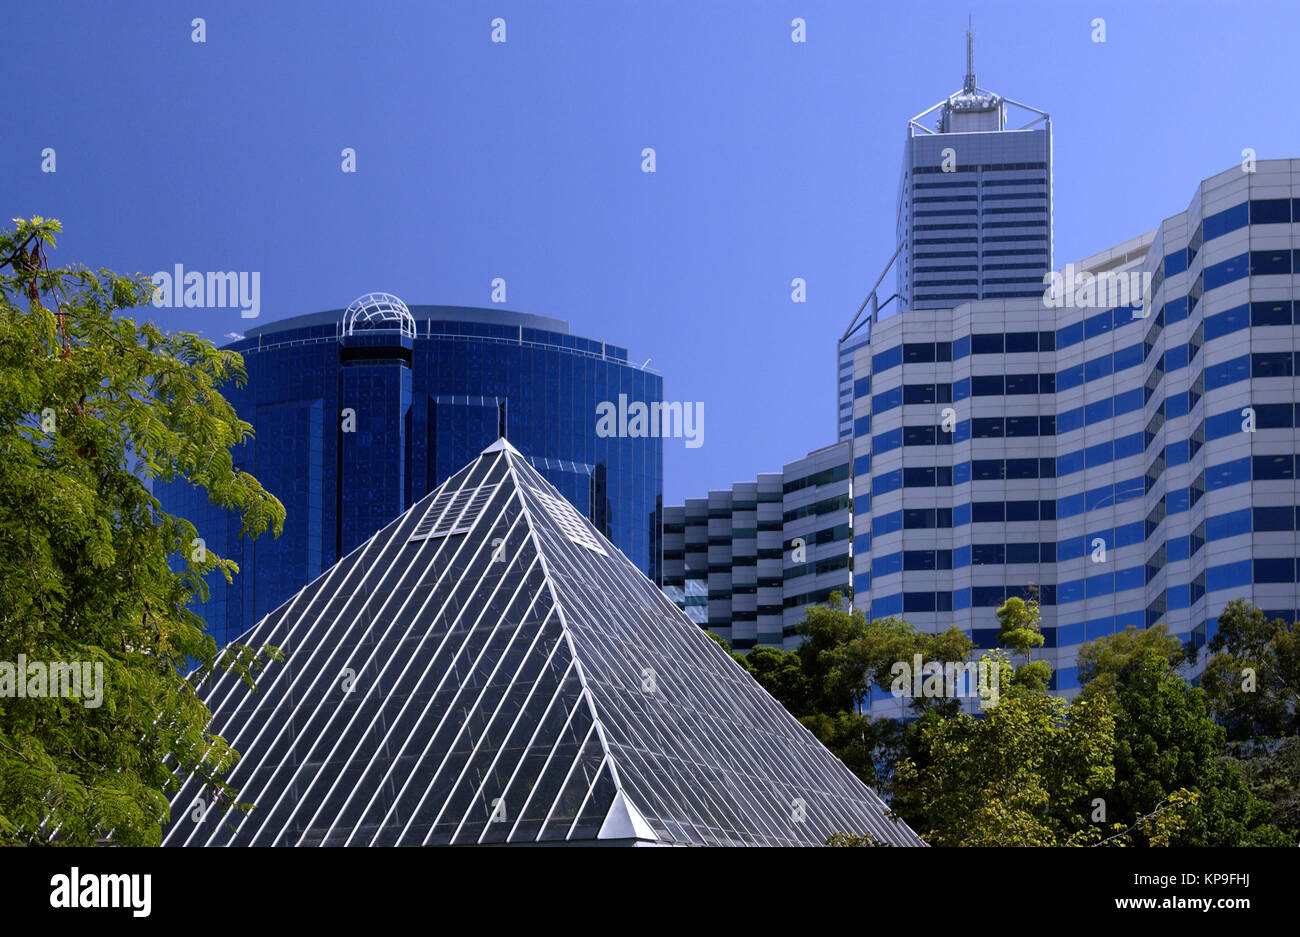 Modern architecture in the city of Perth, Australia. Perth is the capital and largest city of the Australian state - Stock Image